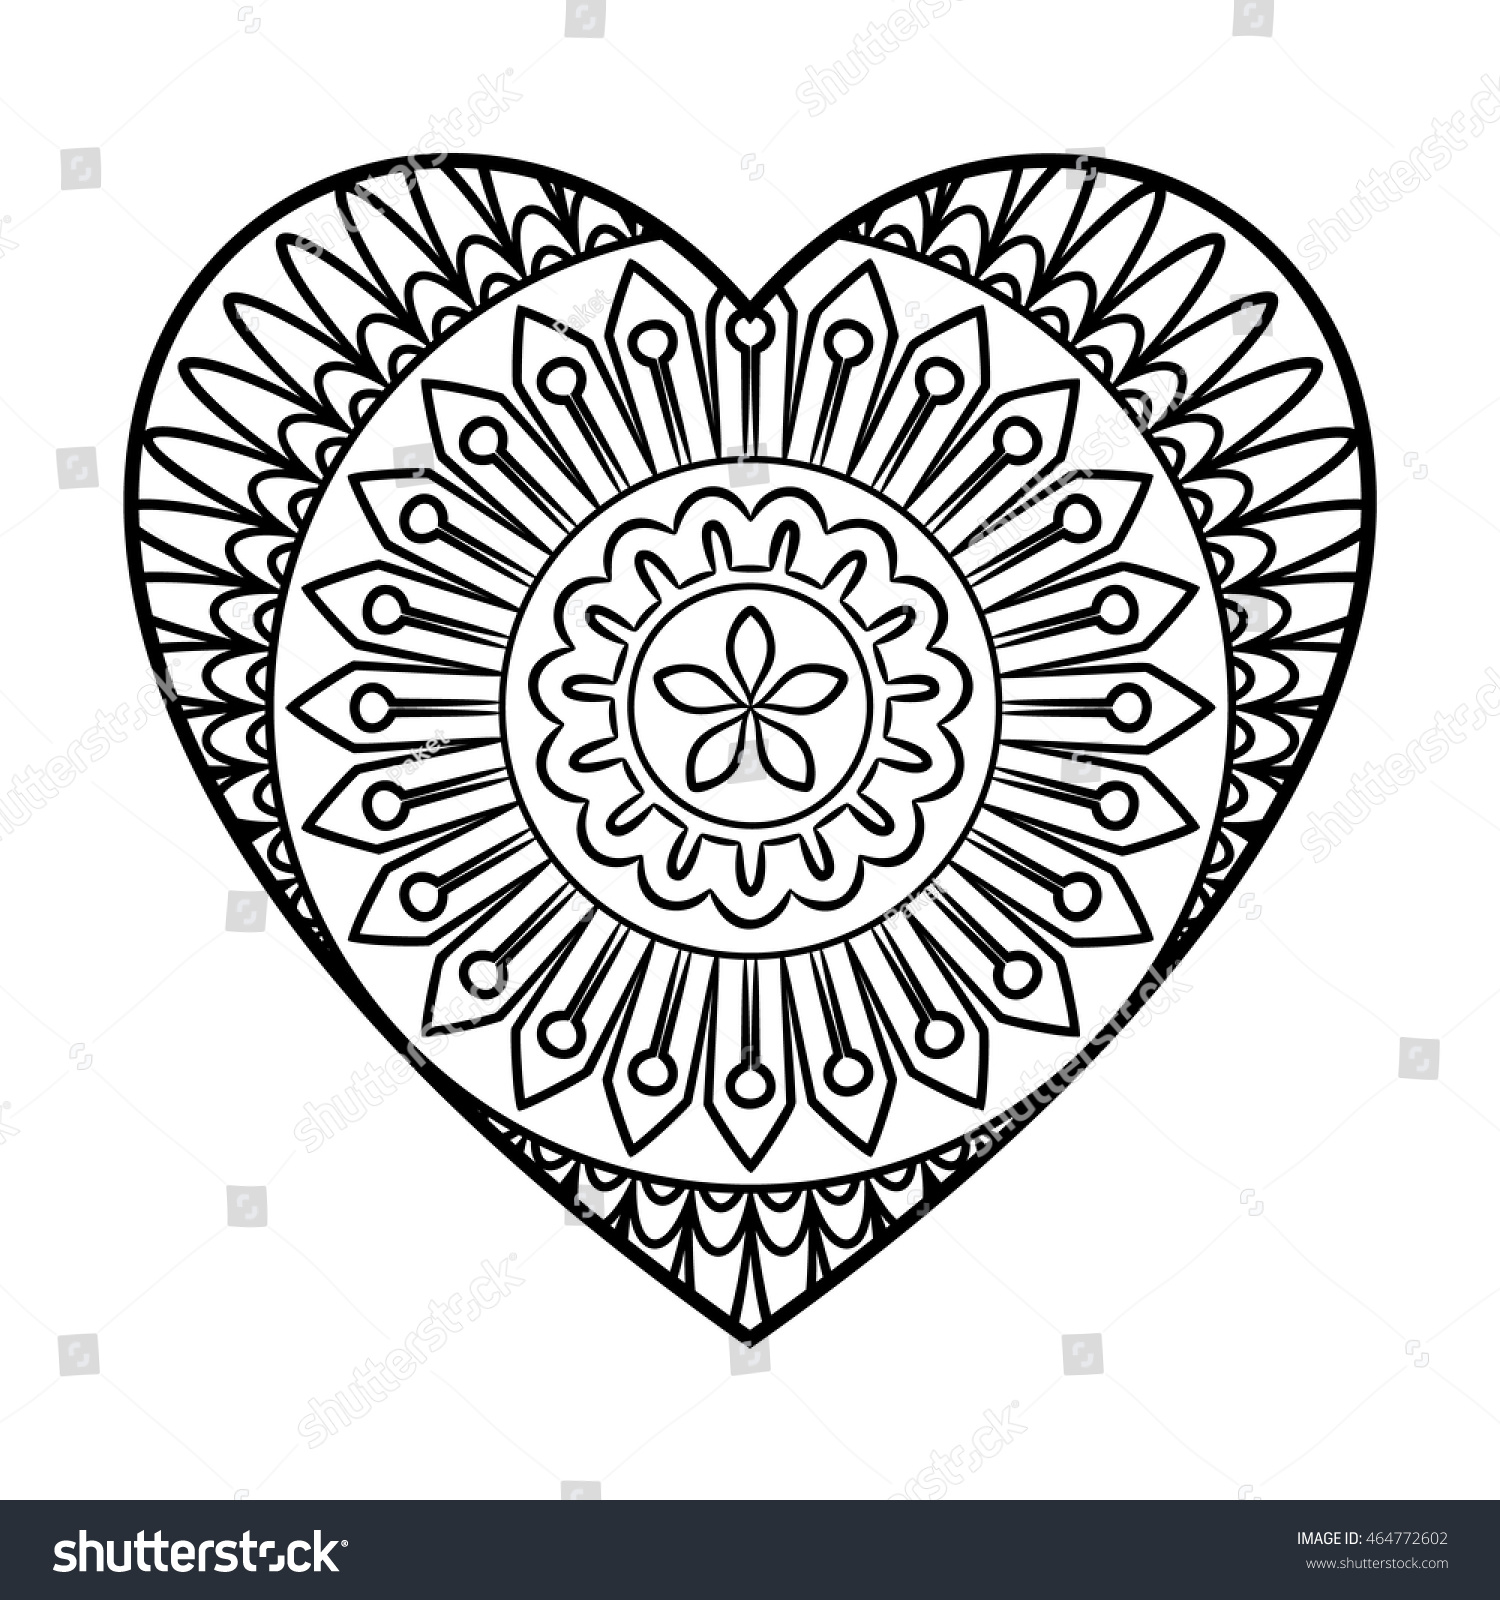 Doodle Heart Mandala Coloring Page Outline Stock Vector 464772602 ...